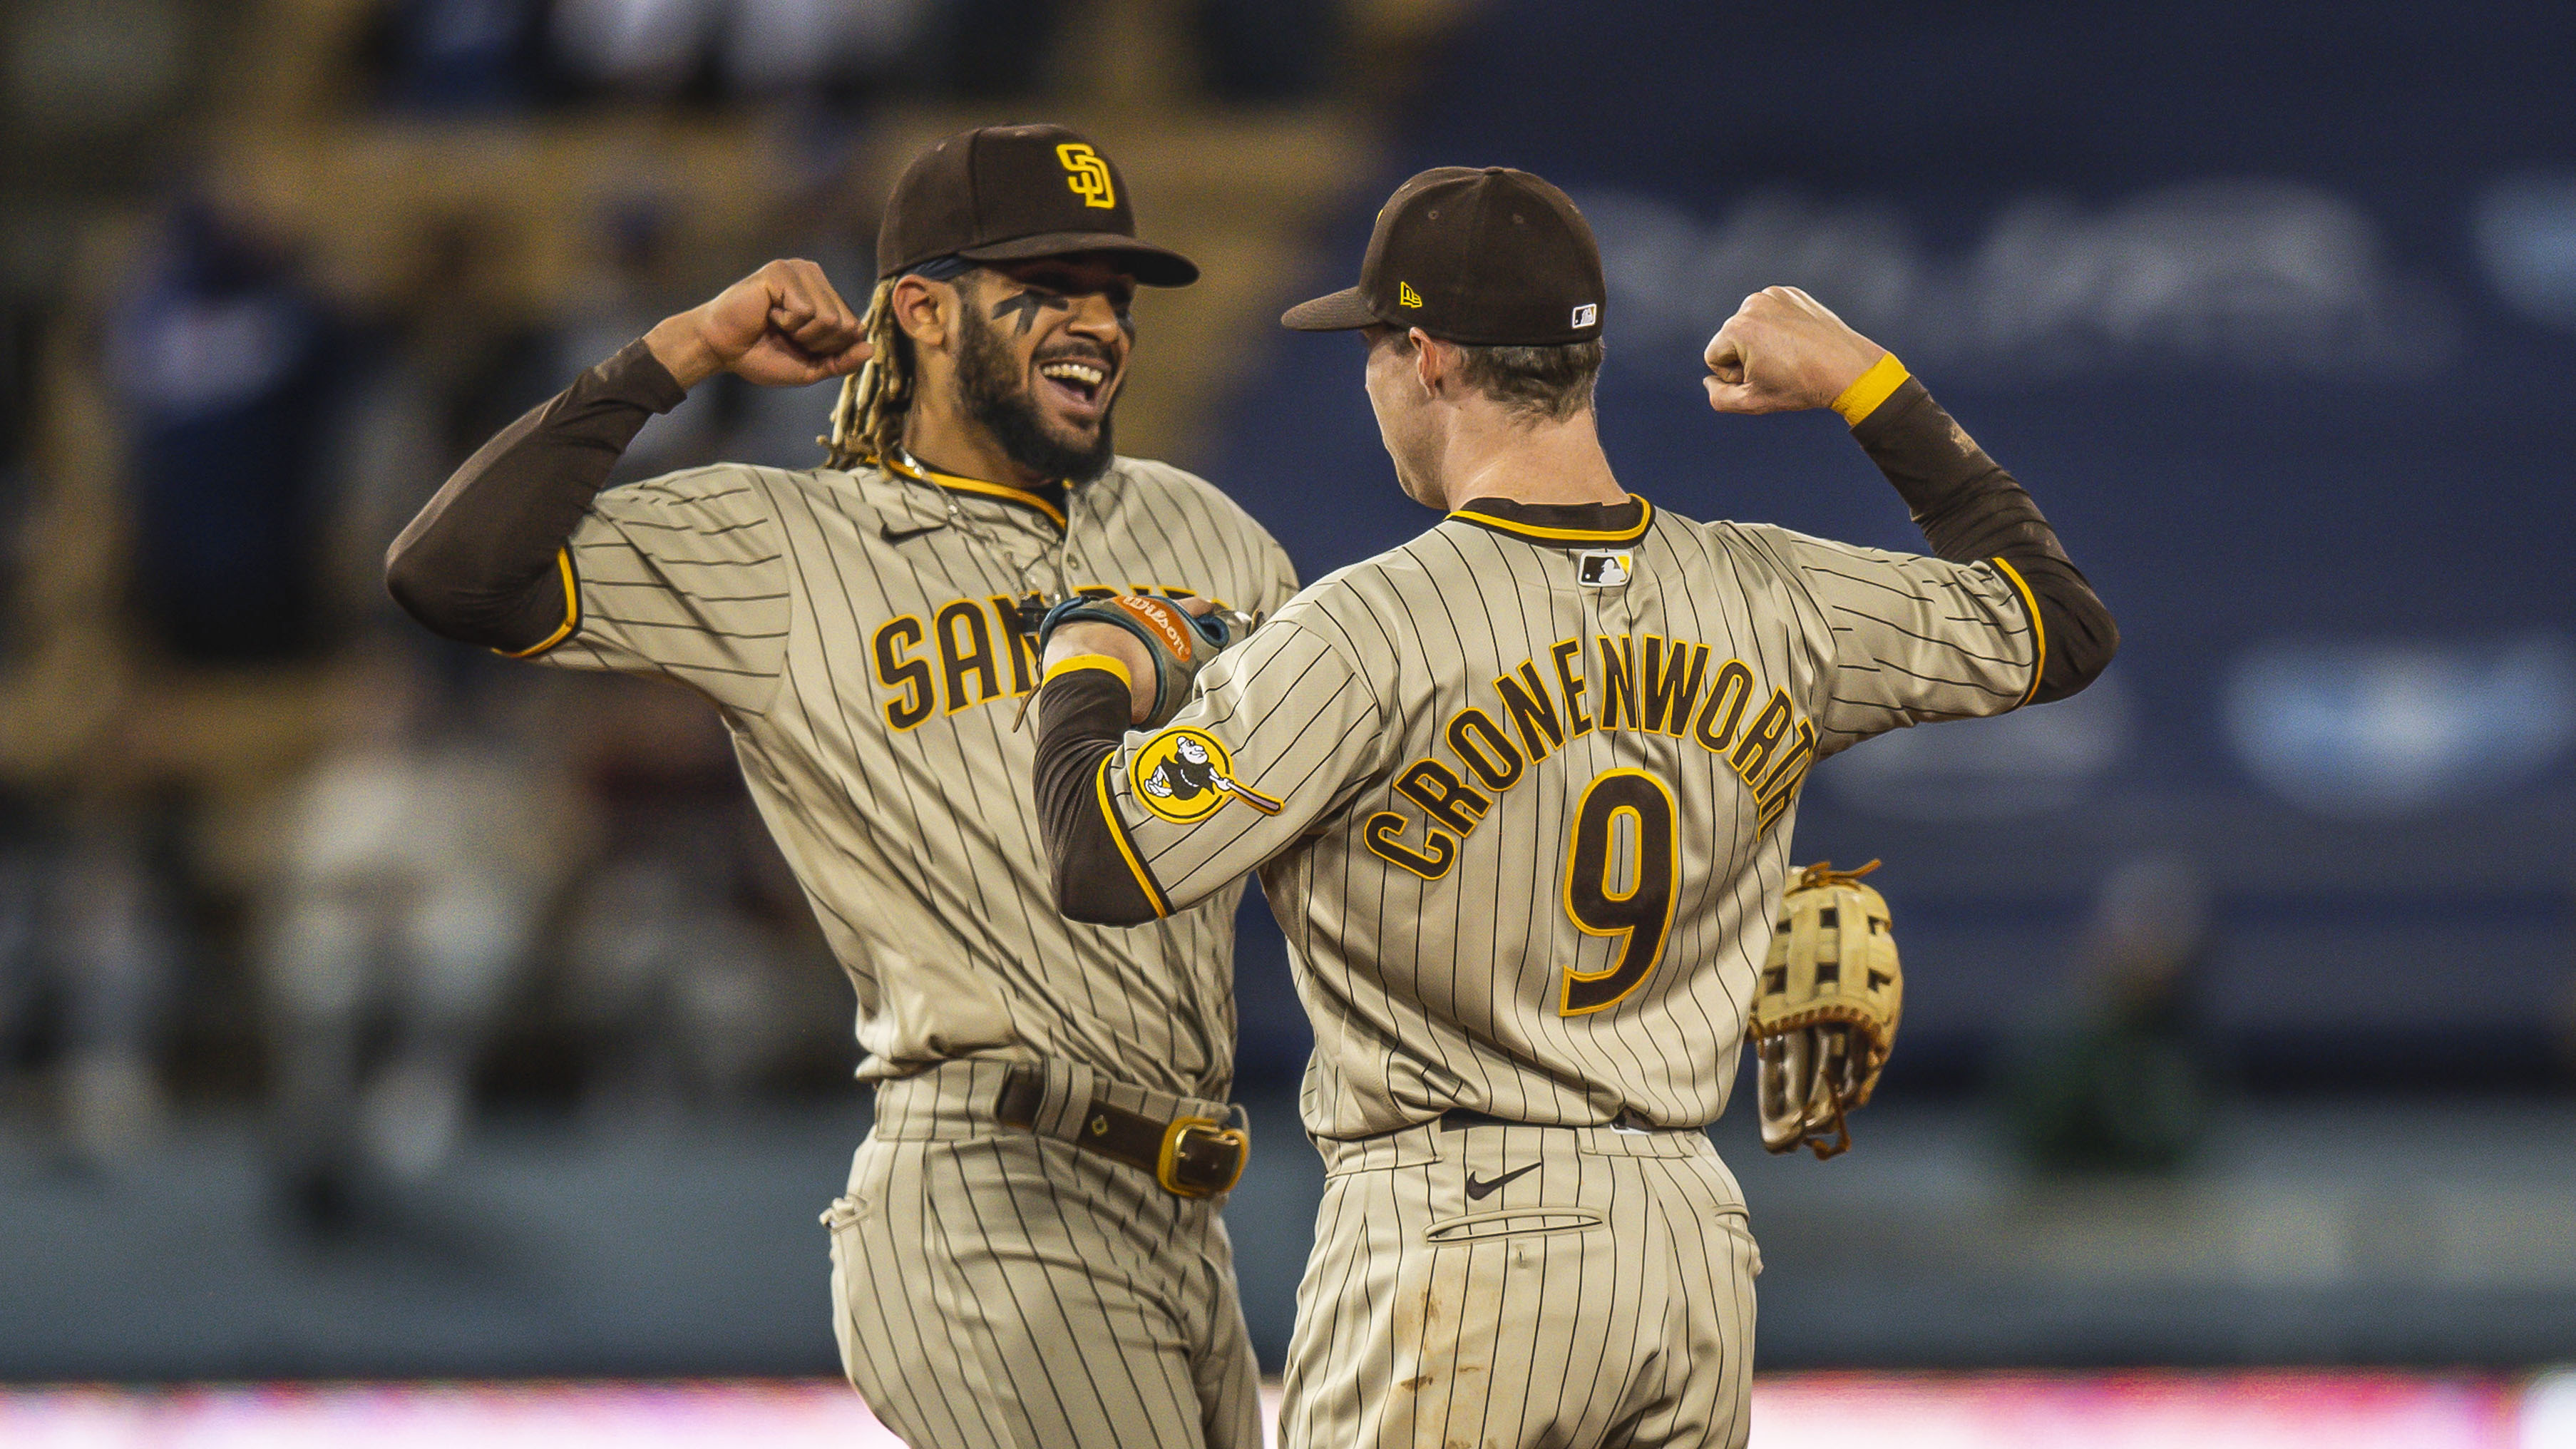 Epic Los Angeles Dodgers-San Diego Padres season series off to 2-2 start